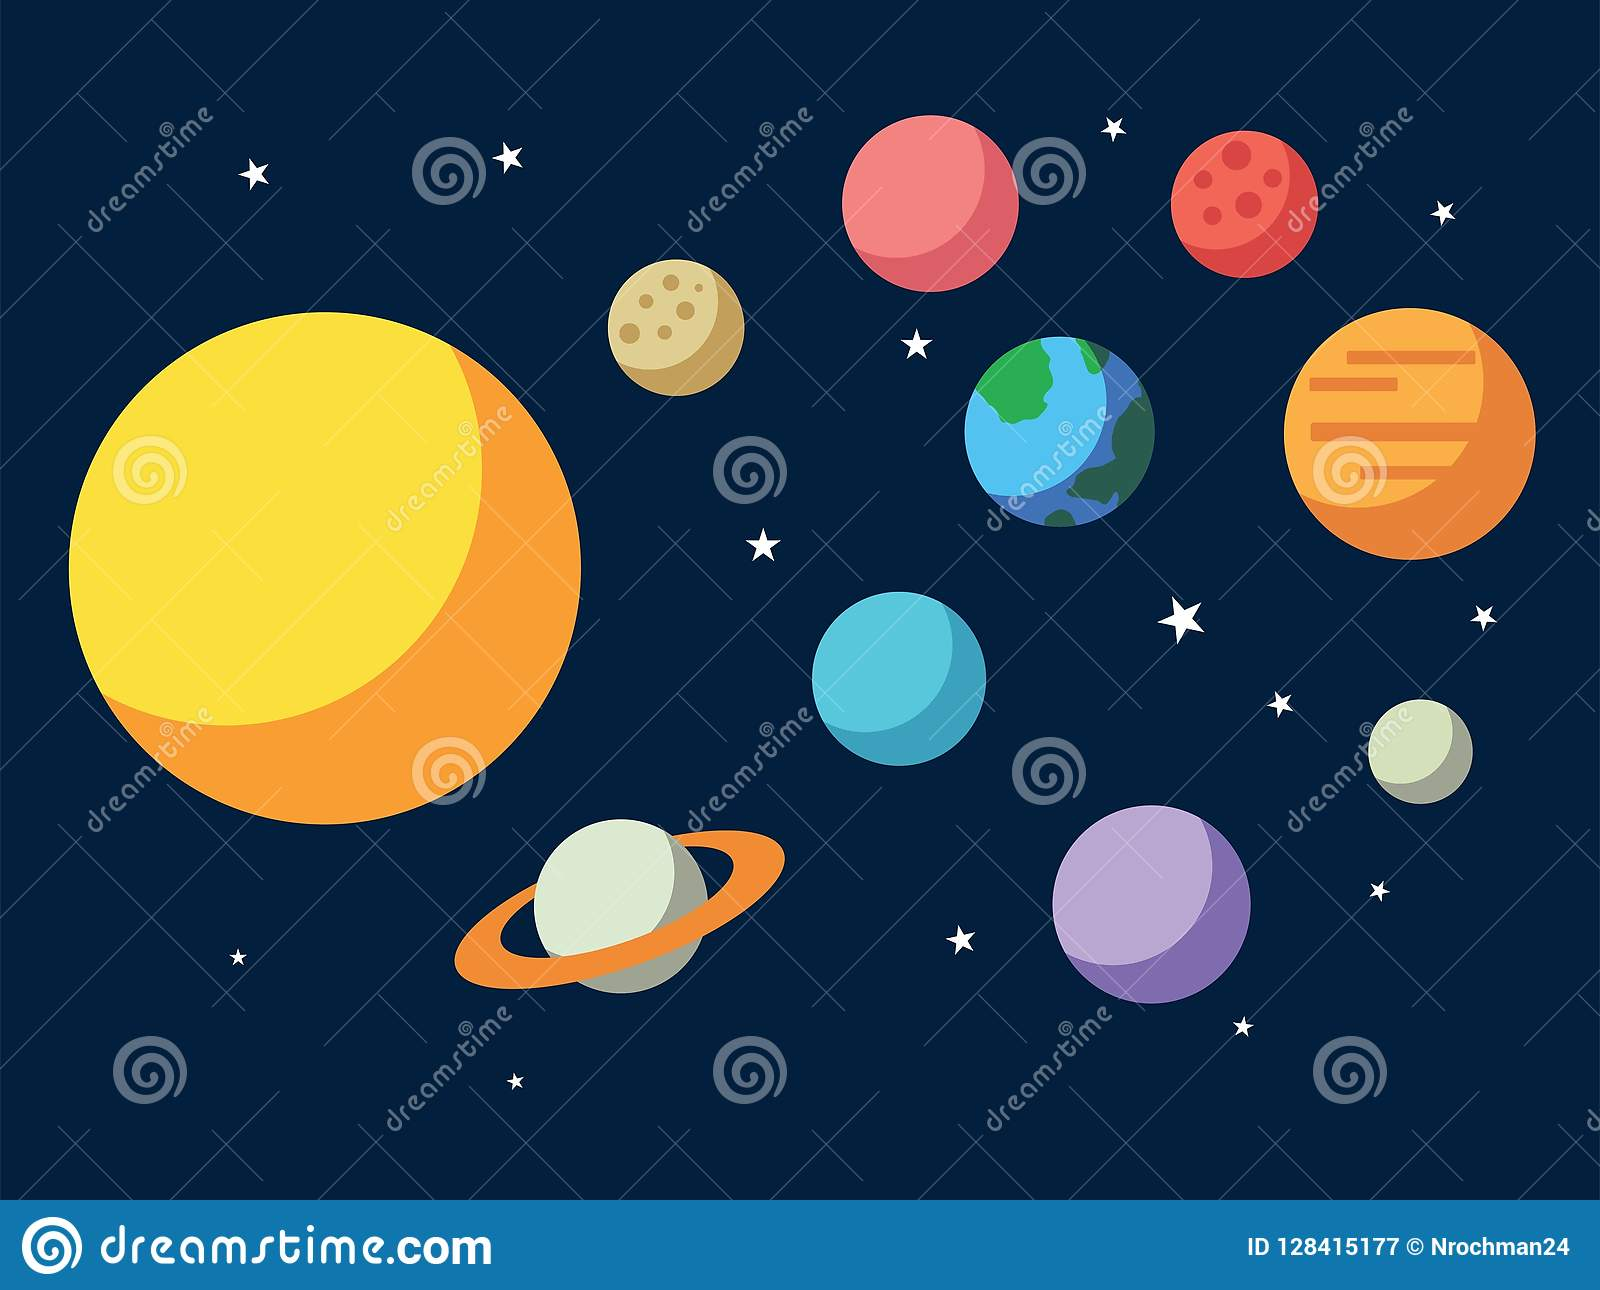 Vector illustration of Solar system. All planets Sun Mercury Venus Moon Earth Mars in the sky. Space, universe galaxy astronomy sc